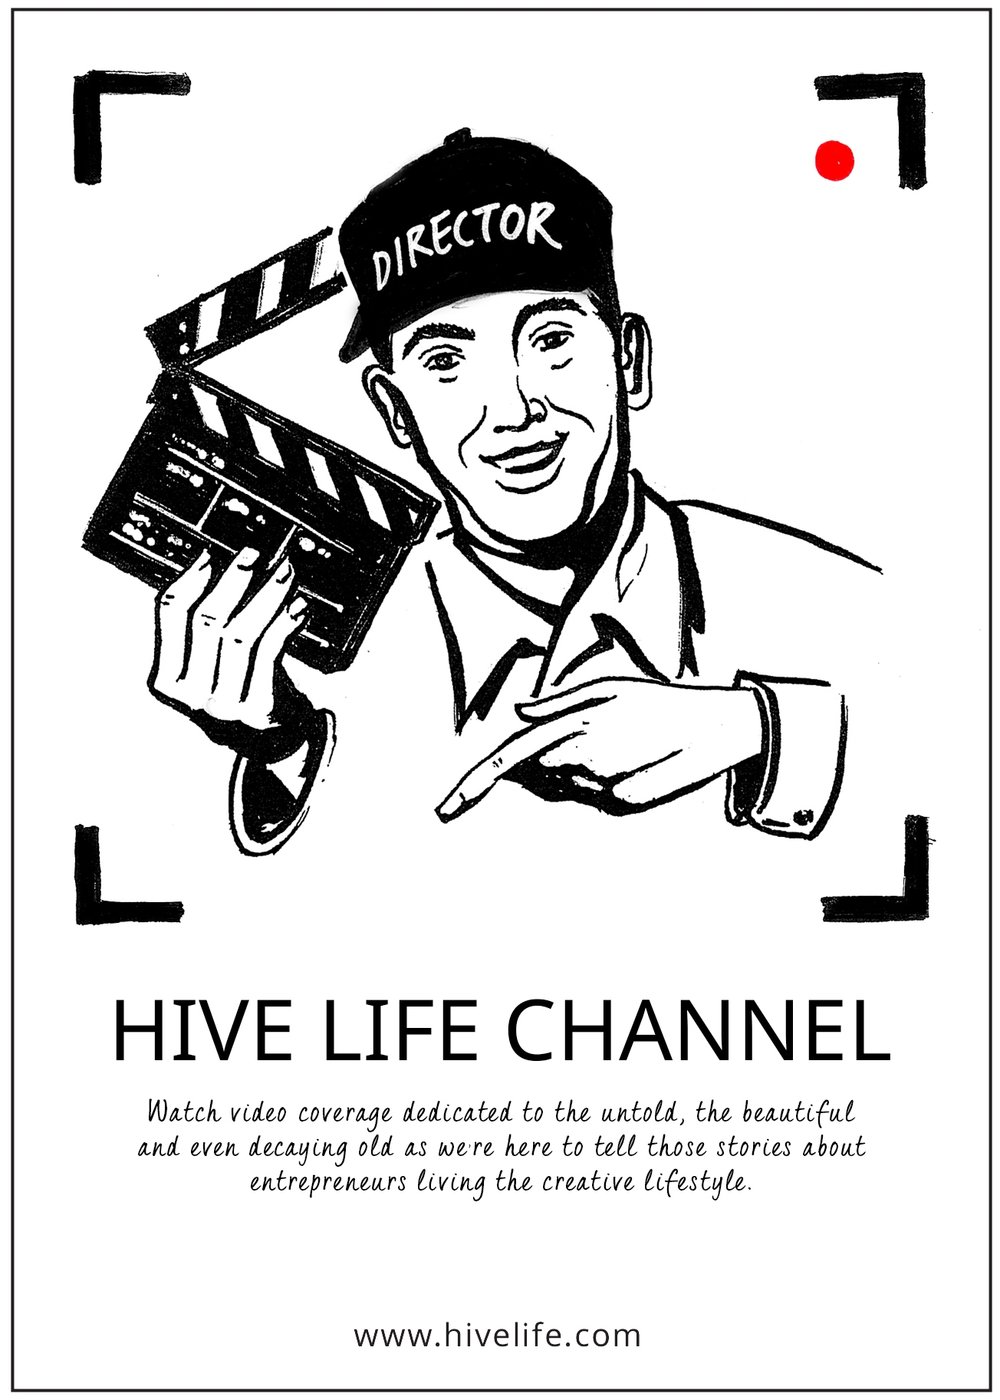 HIVE LIFE CHANNEL PC.jpg